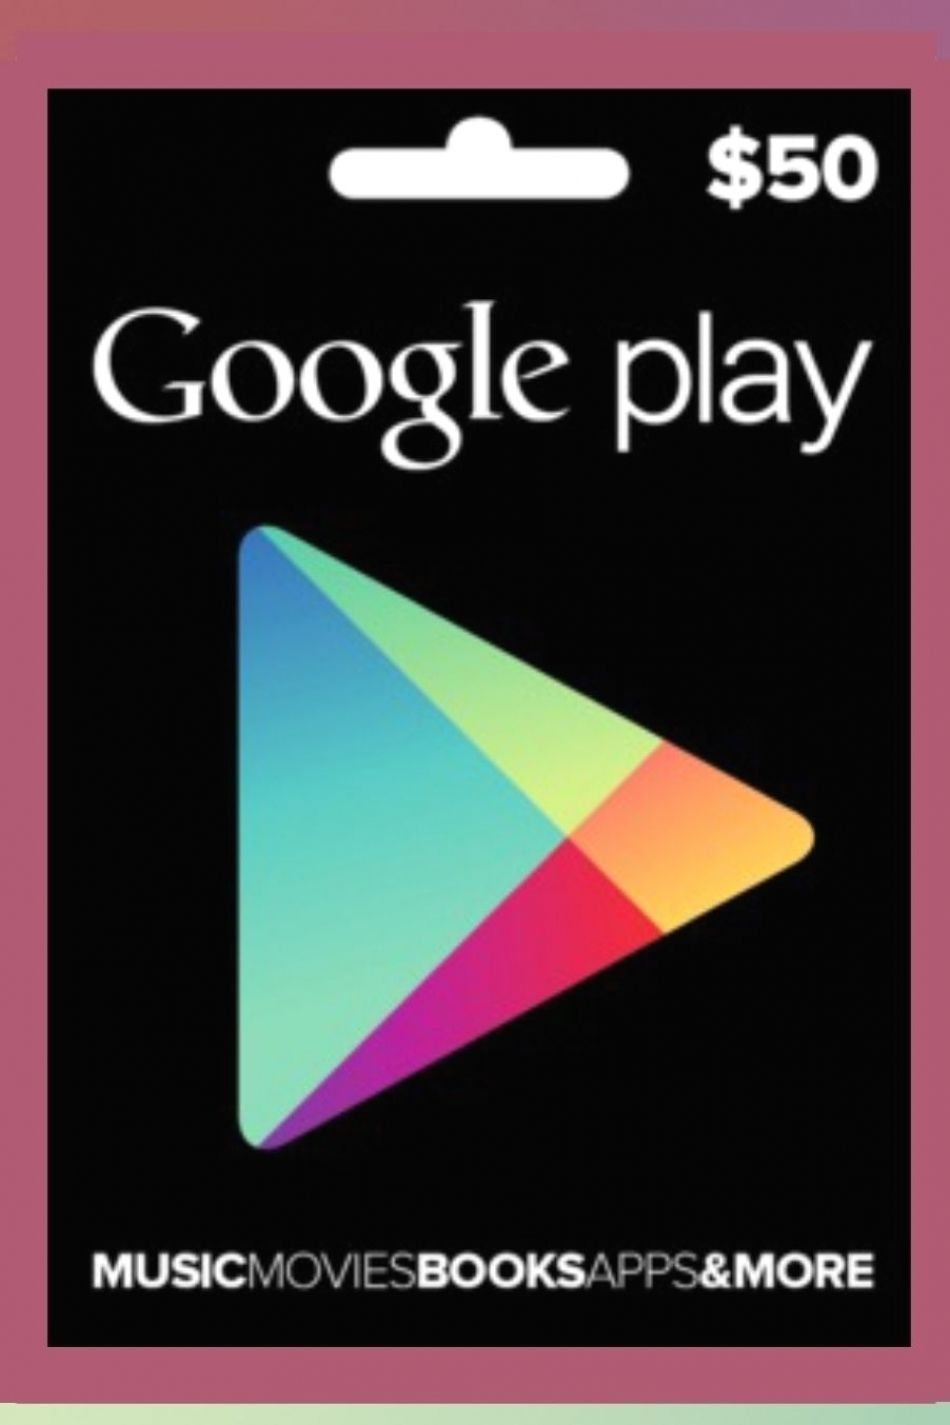 Google Play Free 50 Gift Card Code Generator In 2021 In 2021 Google Play Gift Card Amazon Gift Card Free Google Play Codes